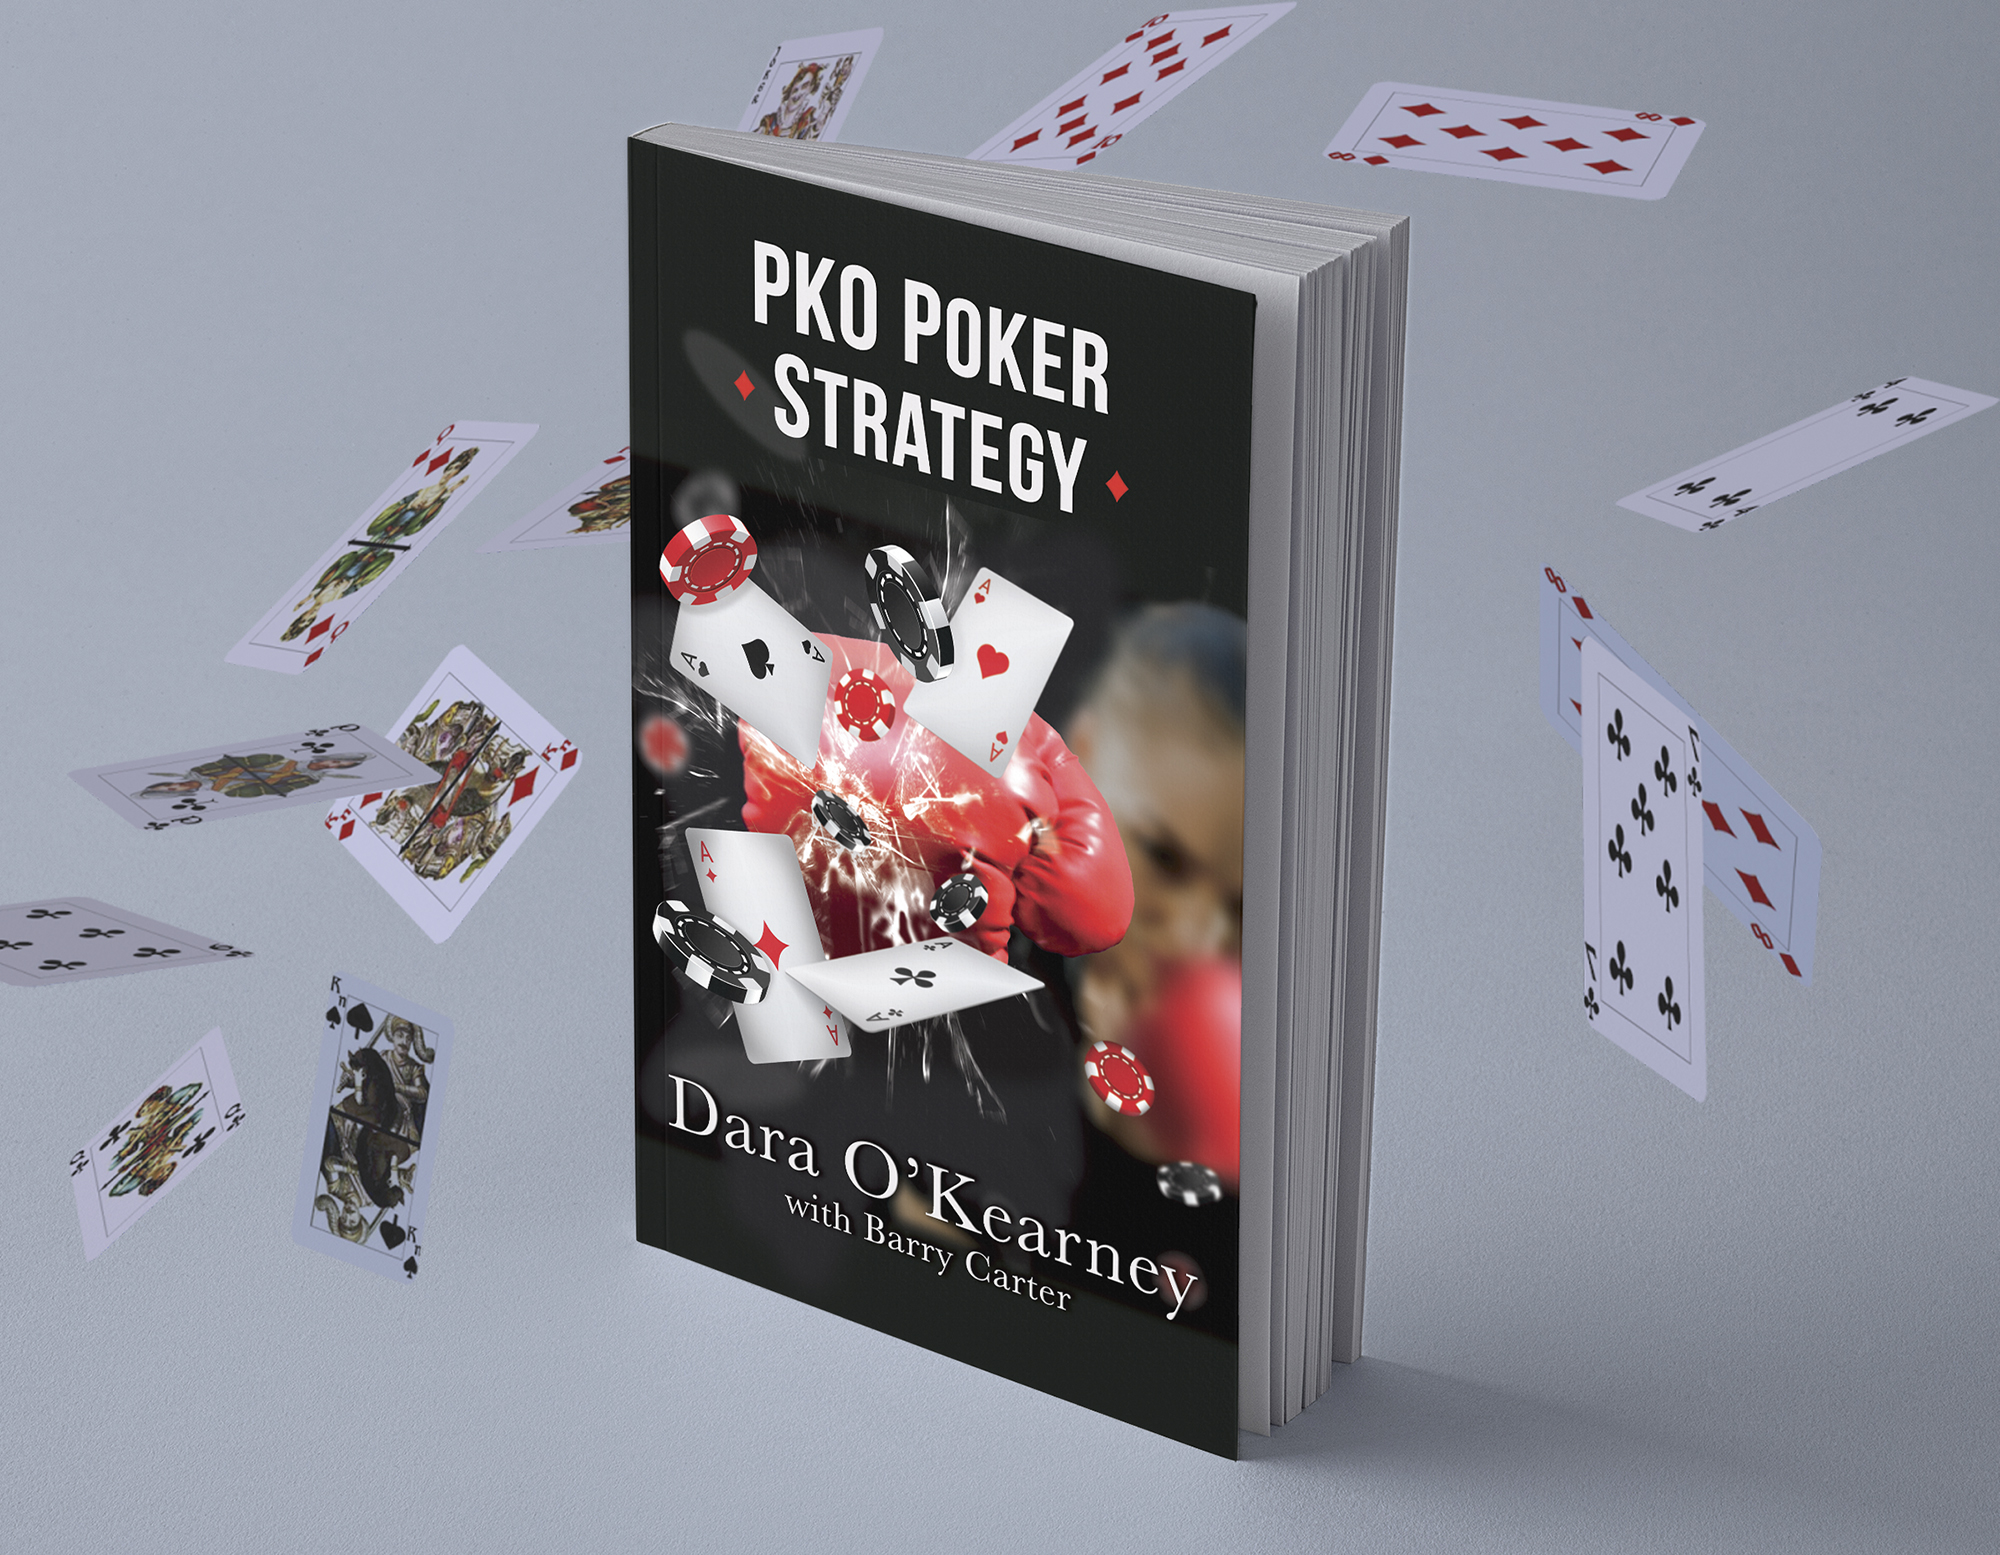 PKO Poker Strategy book cover